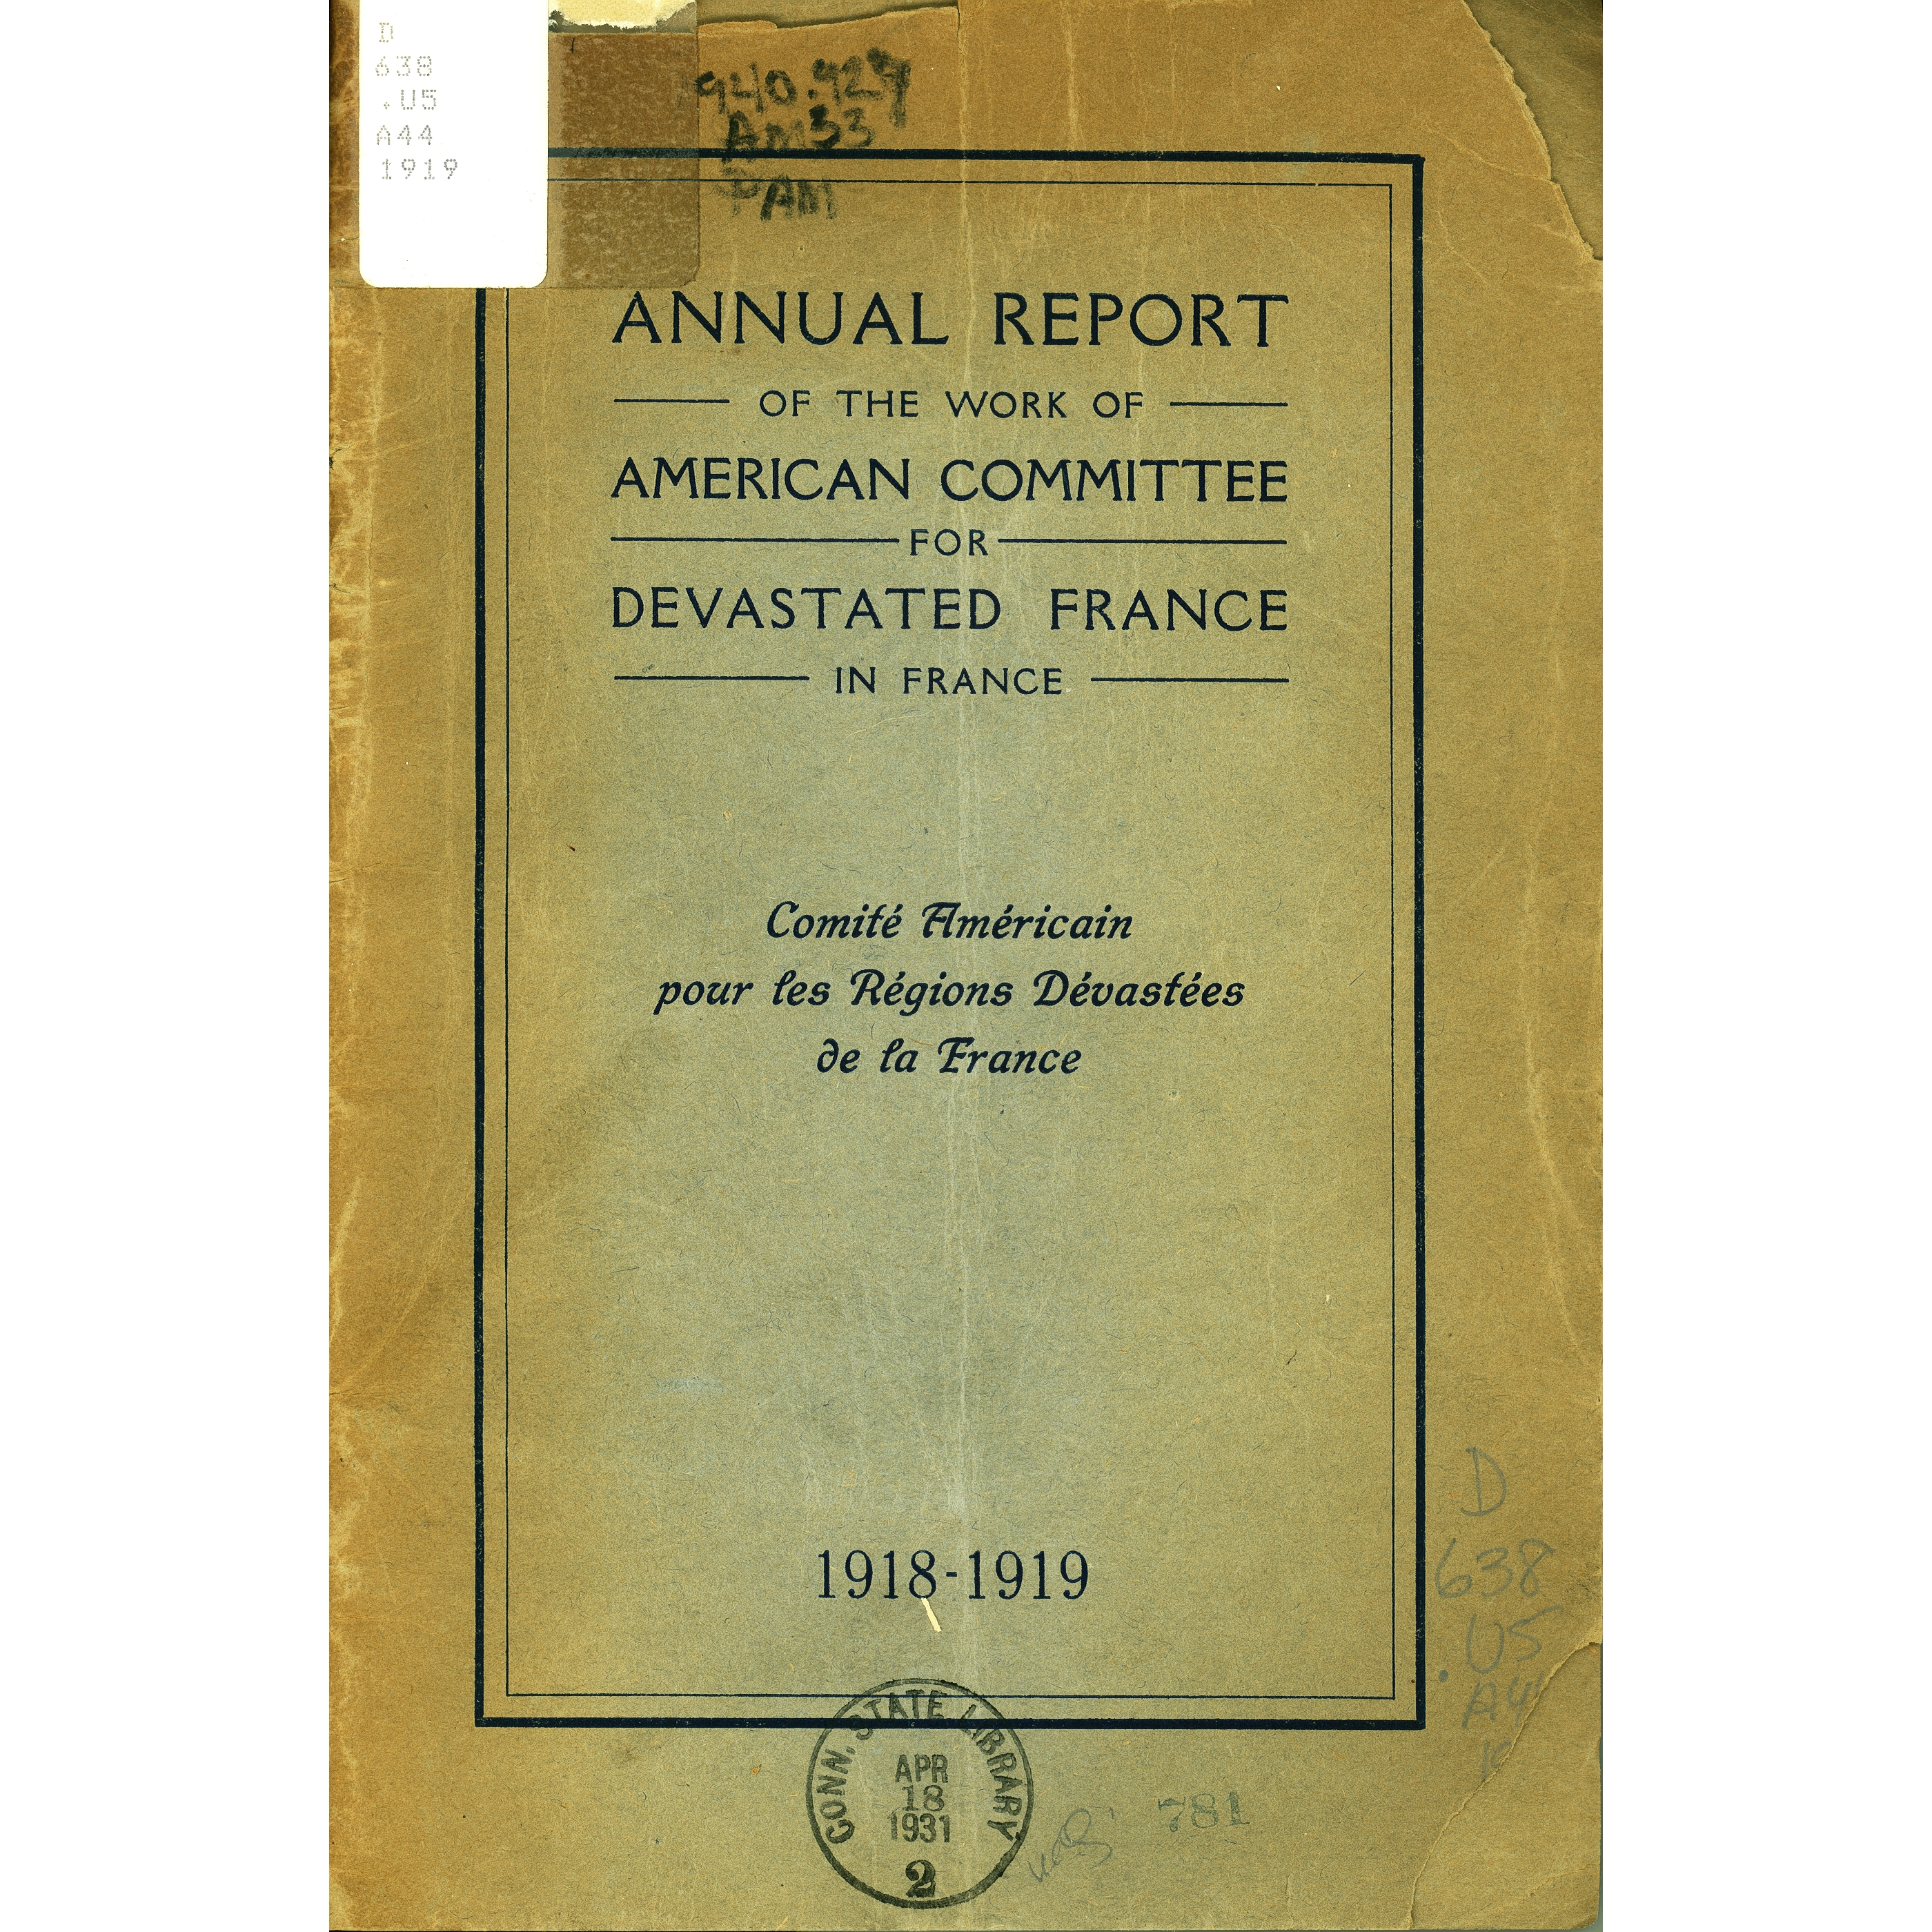 Annual report of the American Committee for Devastated France in France, 1918-1919